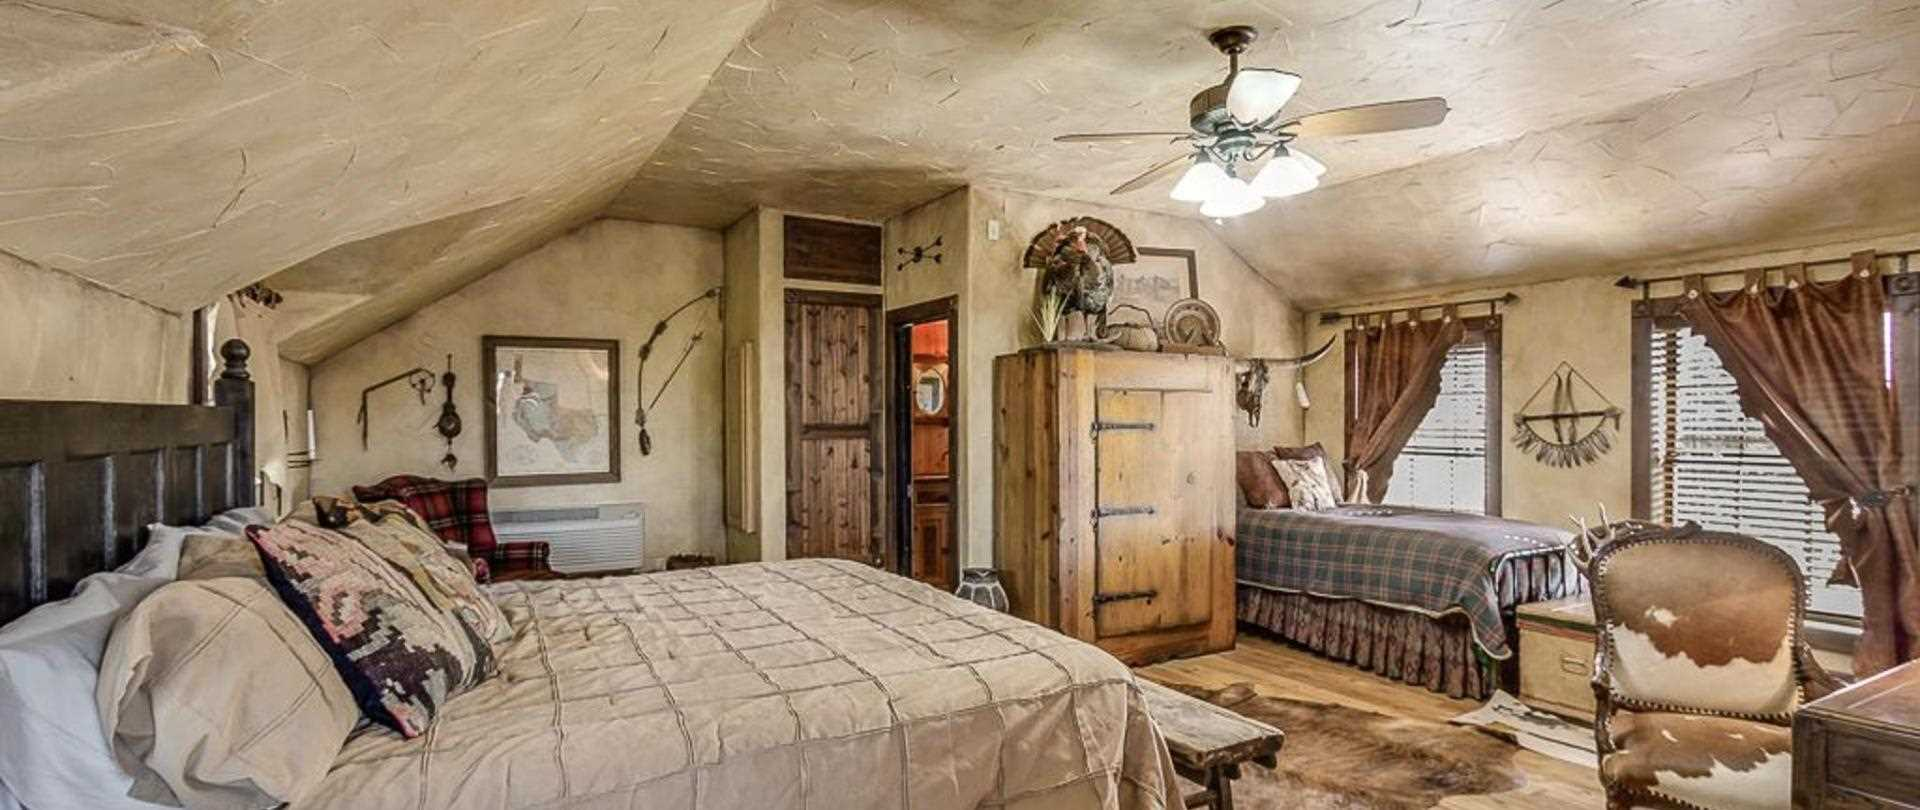 The rustic style of the master suite is something you'll never find in a motel room!